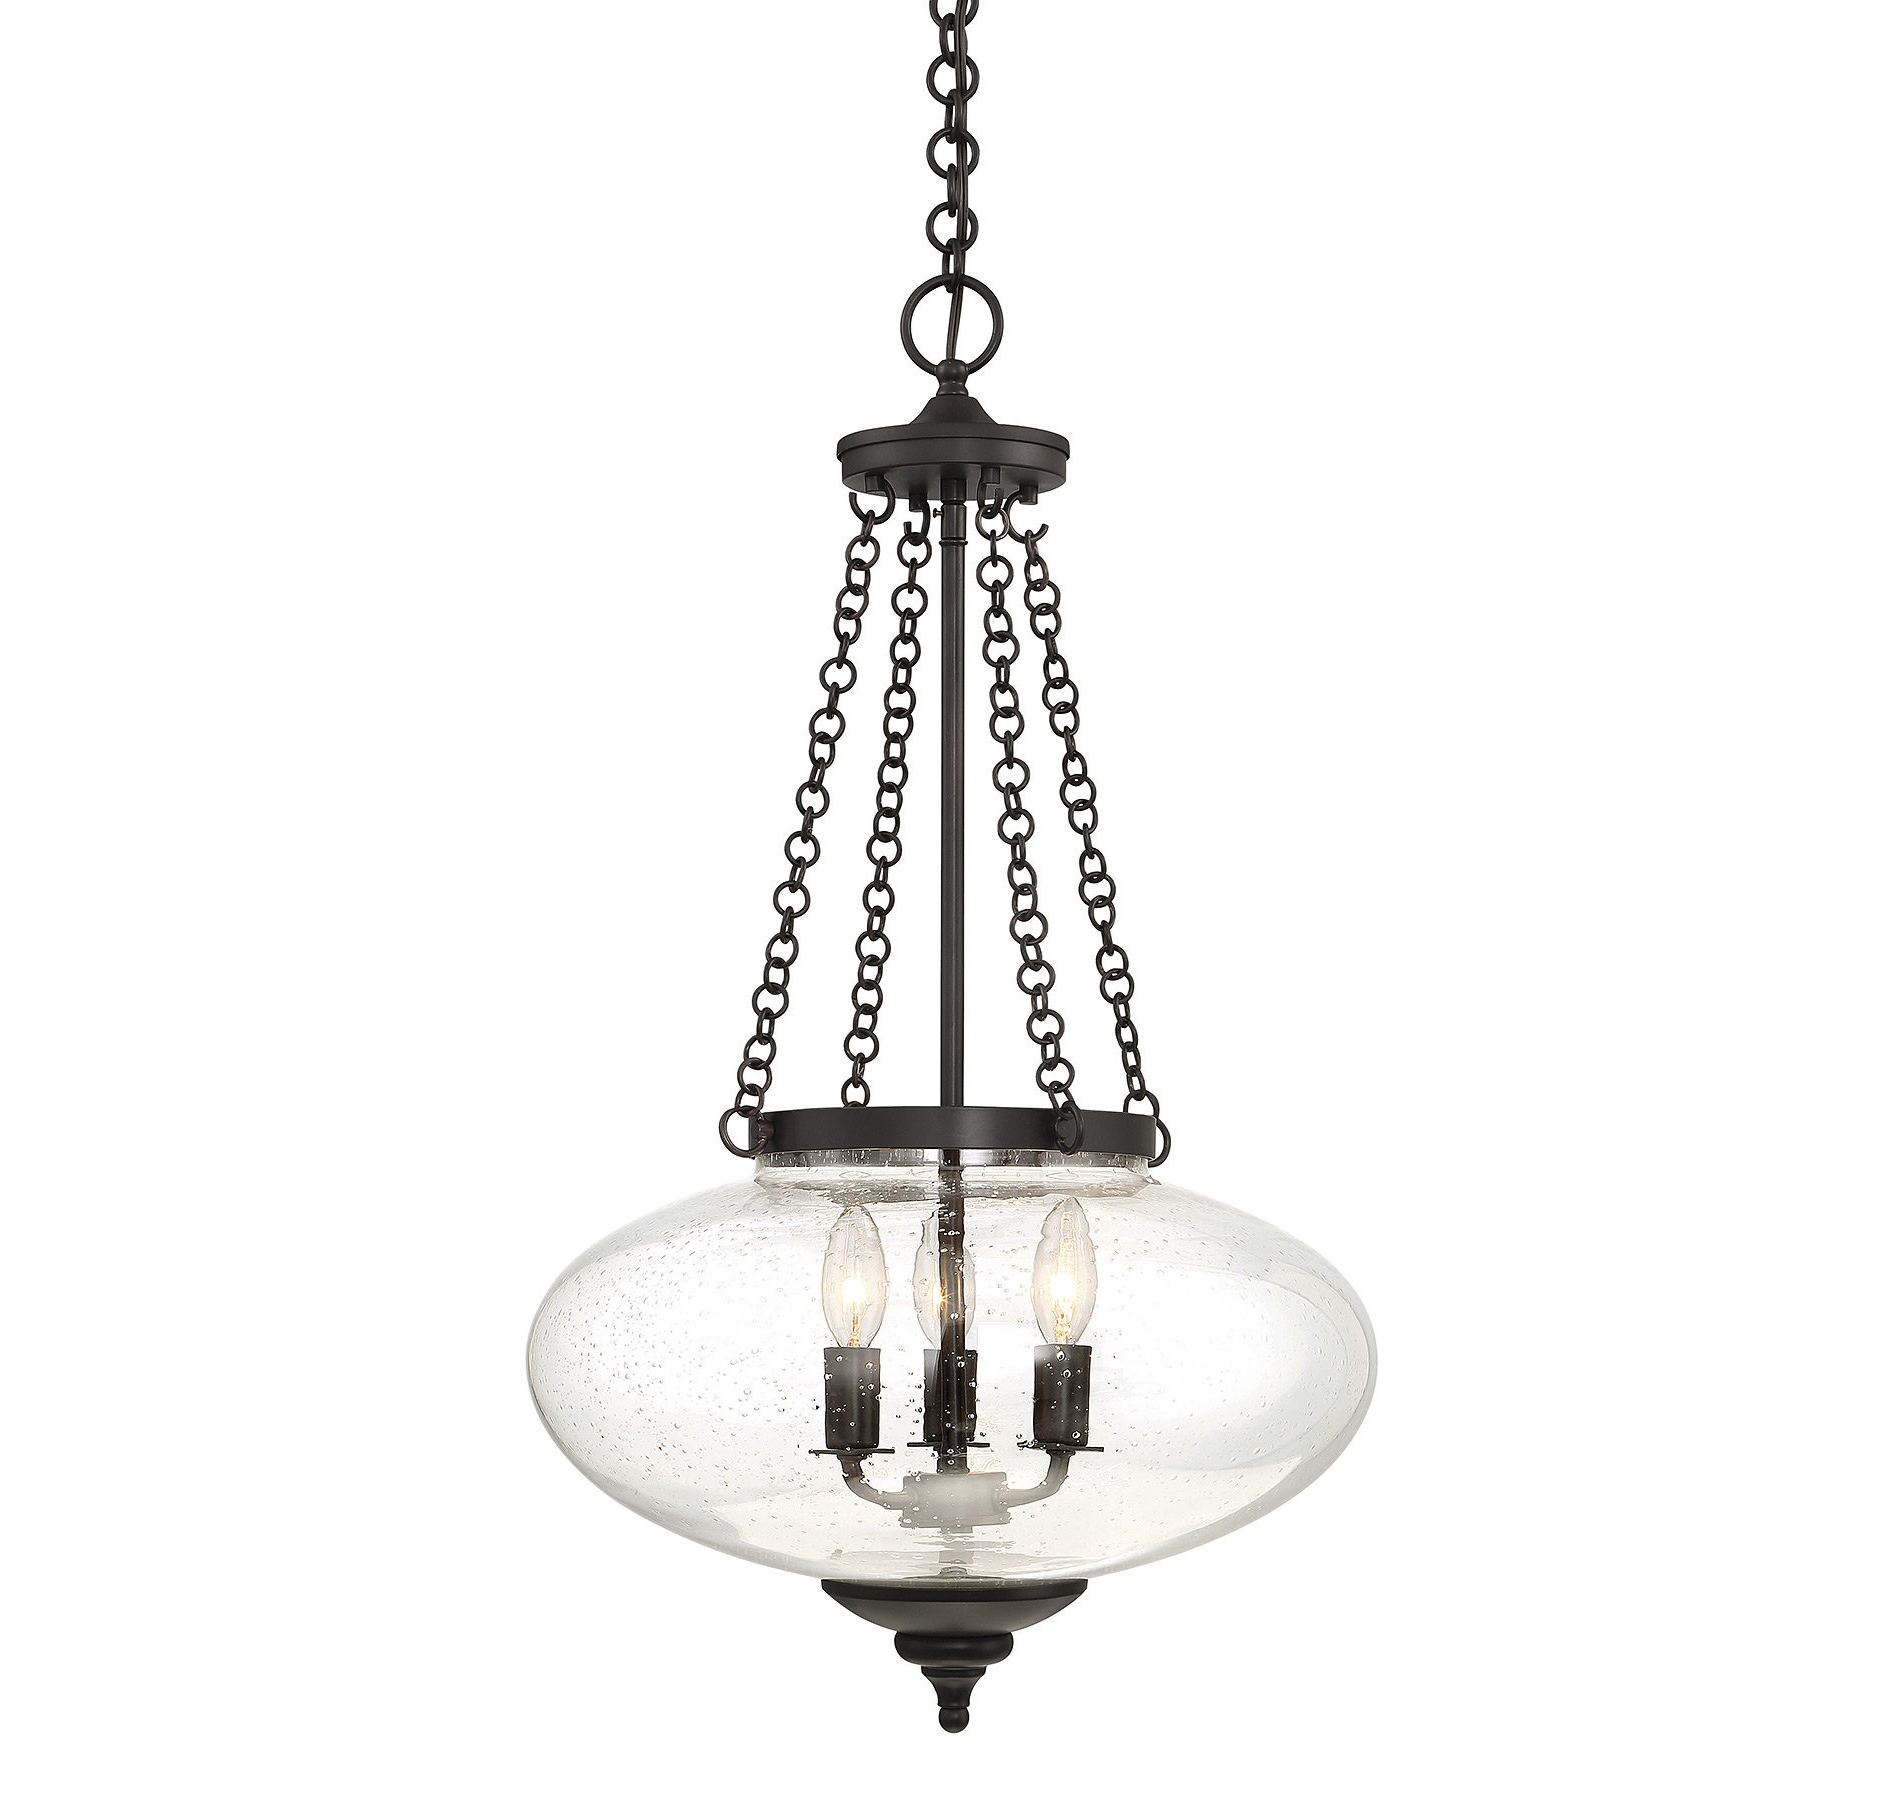 Best and Newest Spokane 1-Light Single Urn Pendants within Fortunat 3-Light Urn Pendant